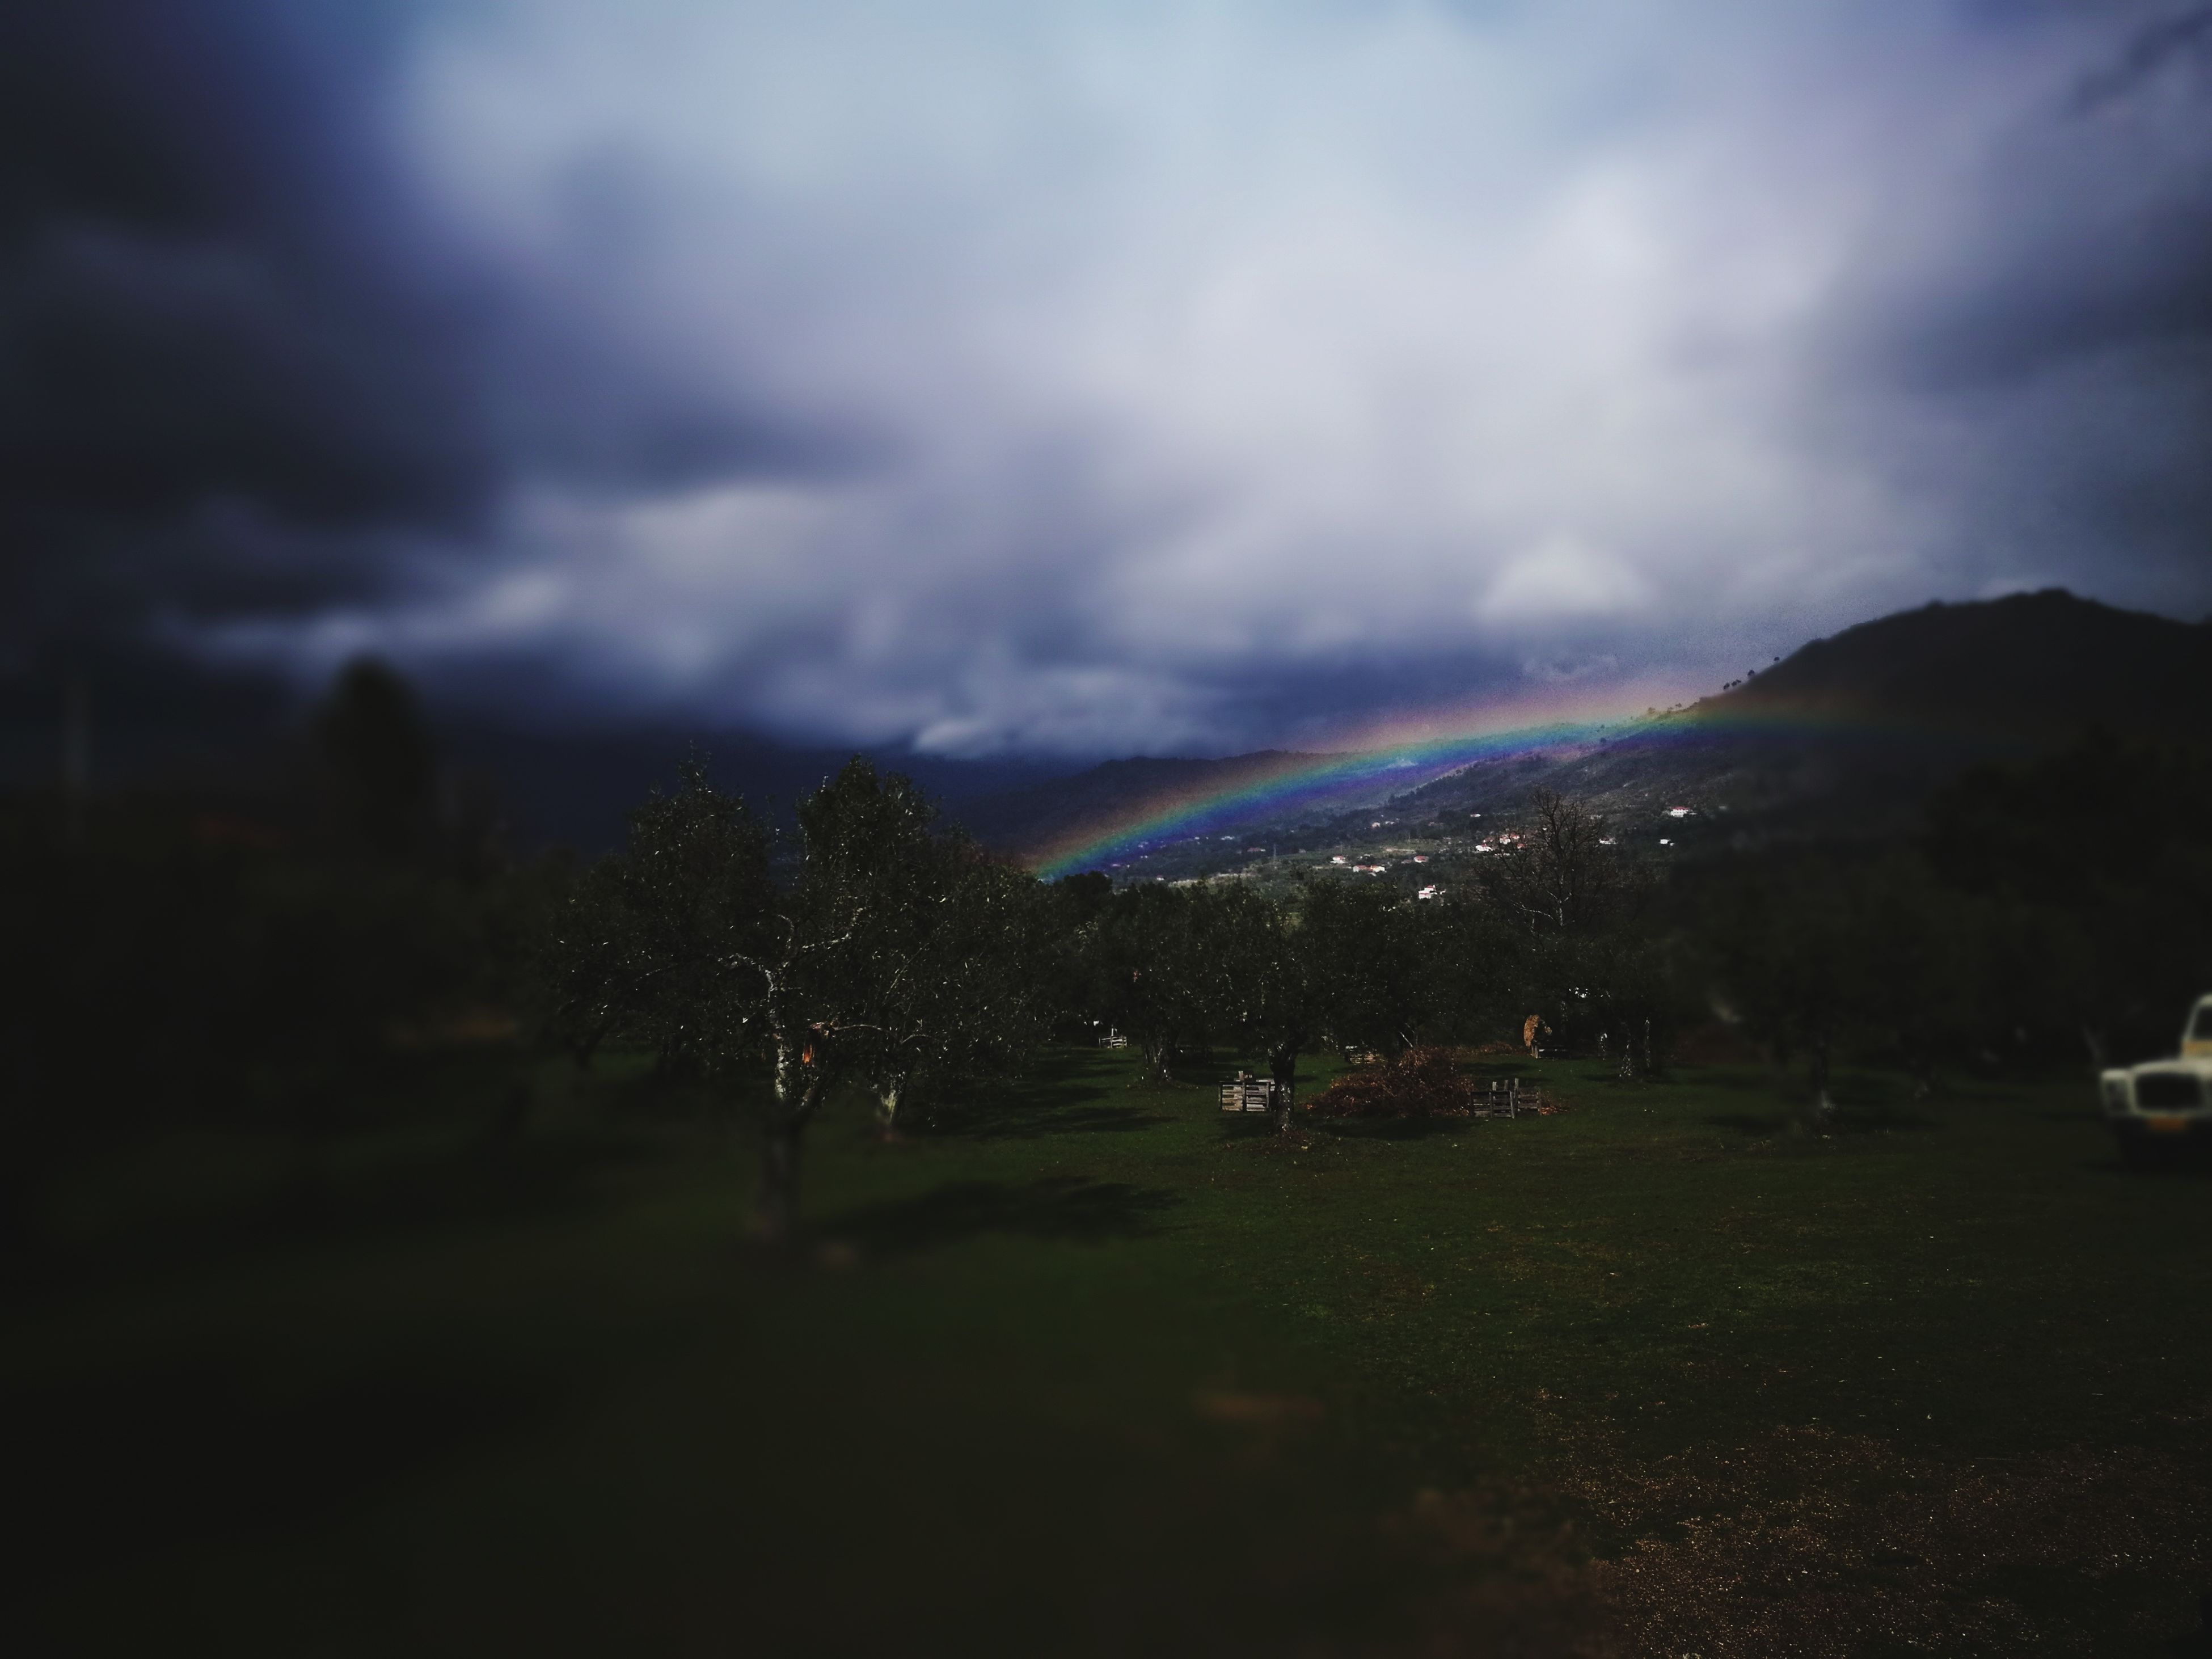 sky, multi colored, nature, cloud - sky, grass, beauty in nature, landscape, outdoors, scenics, day, no people, double rainbow